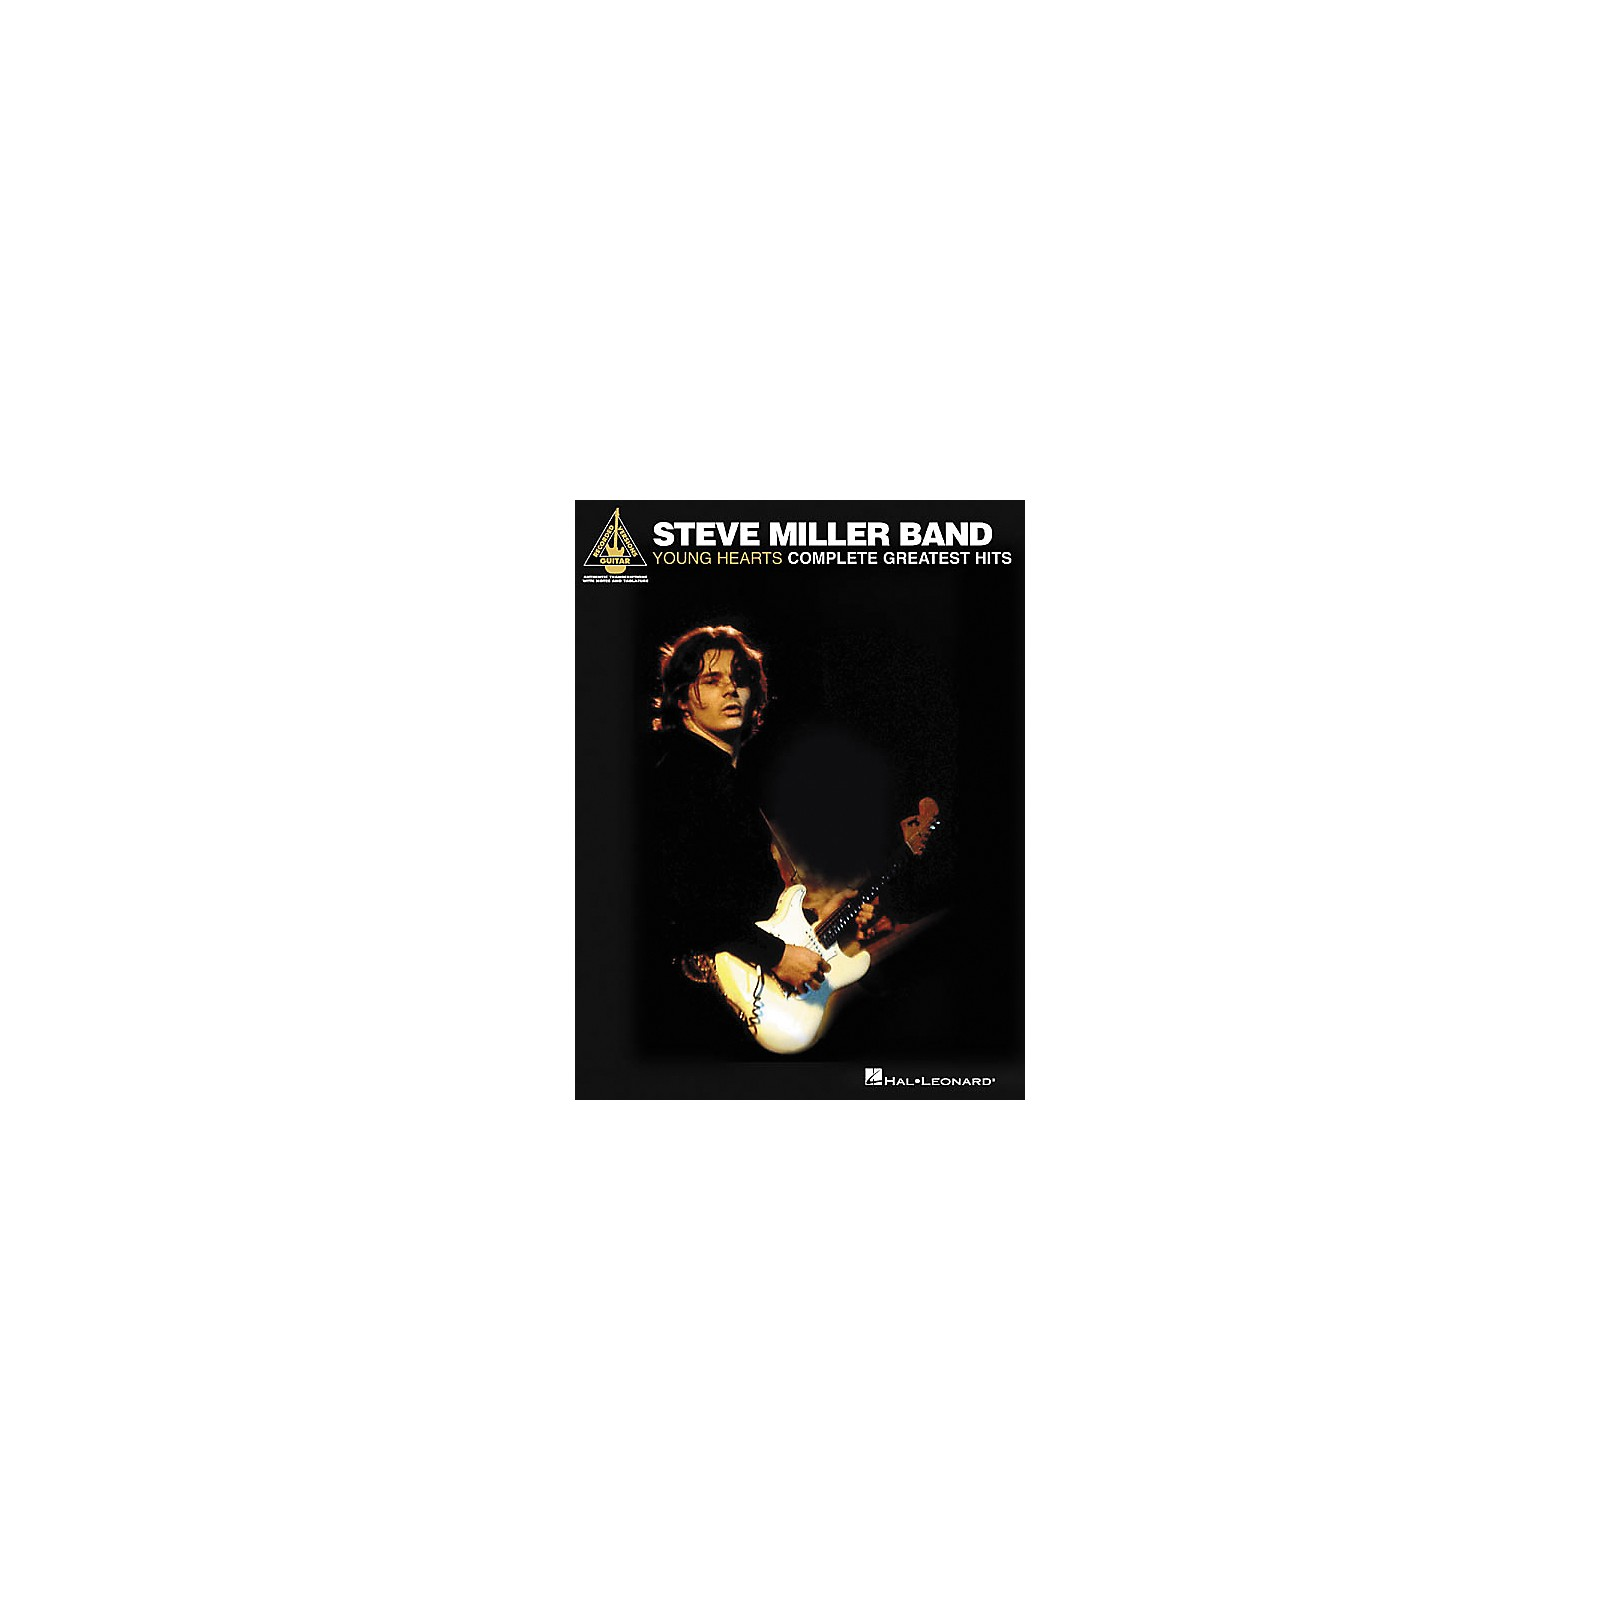 Hal Leonard Steve Miller Band Young Hearts Greatest Hits Guitar Tab Songbook